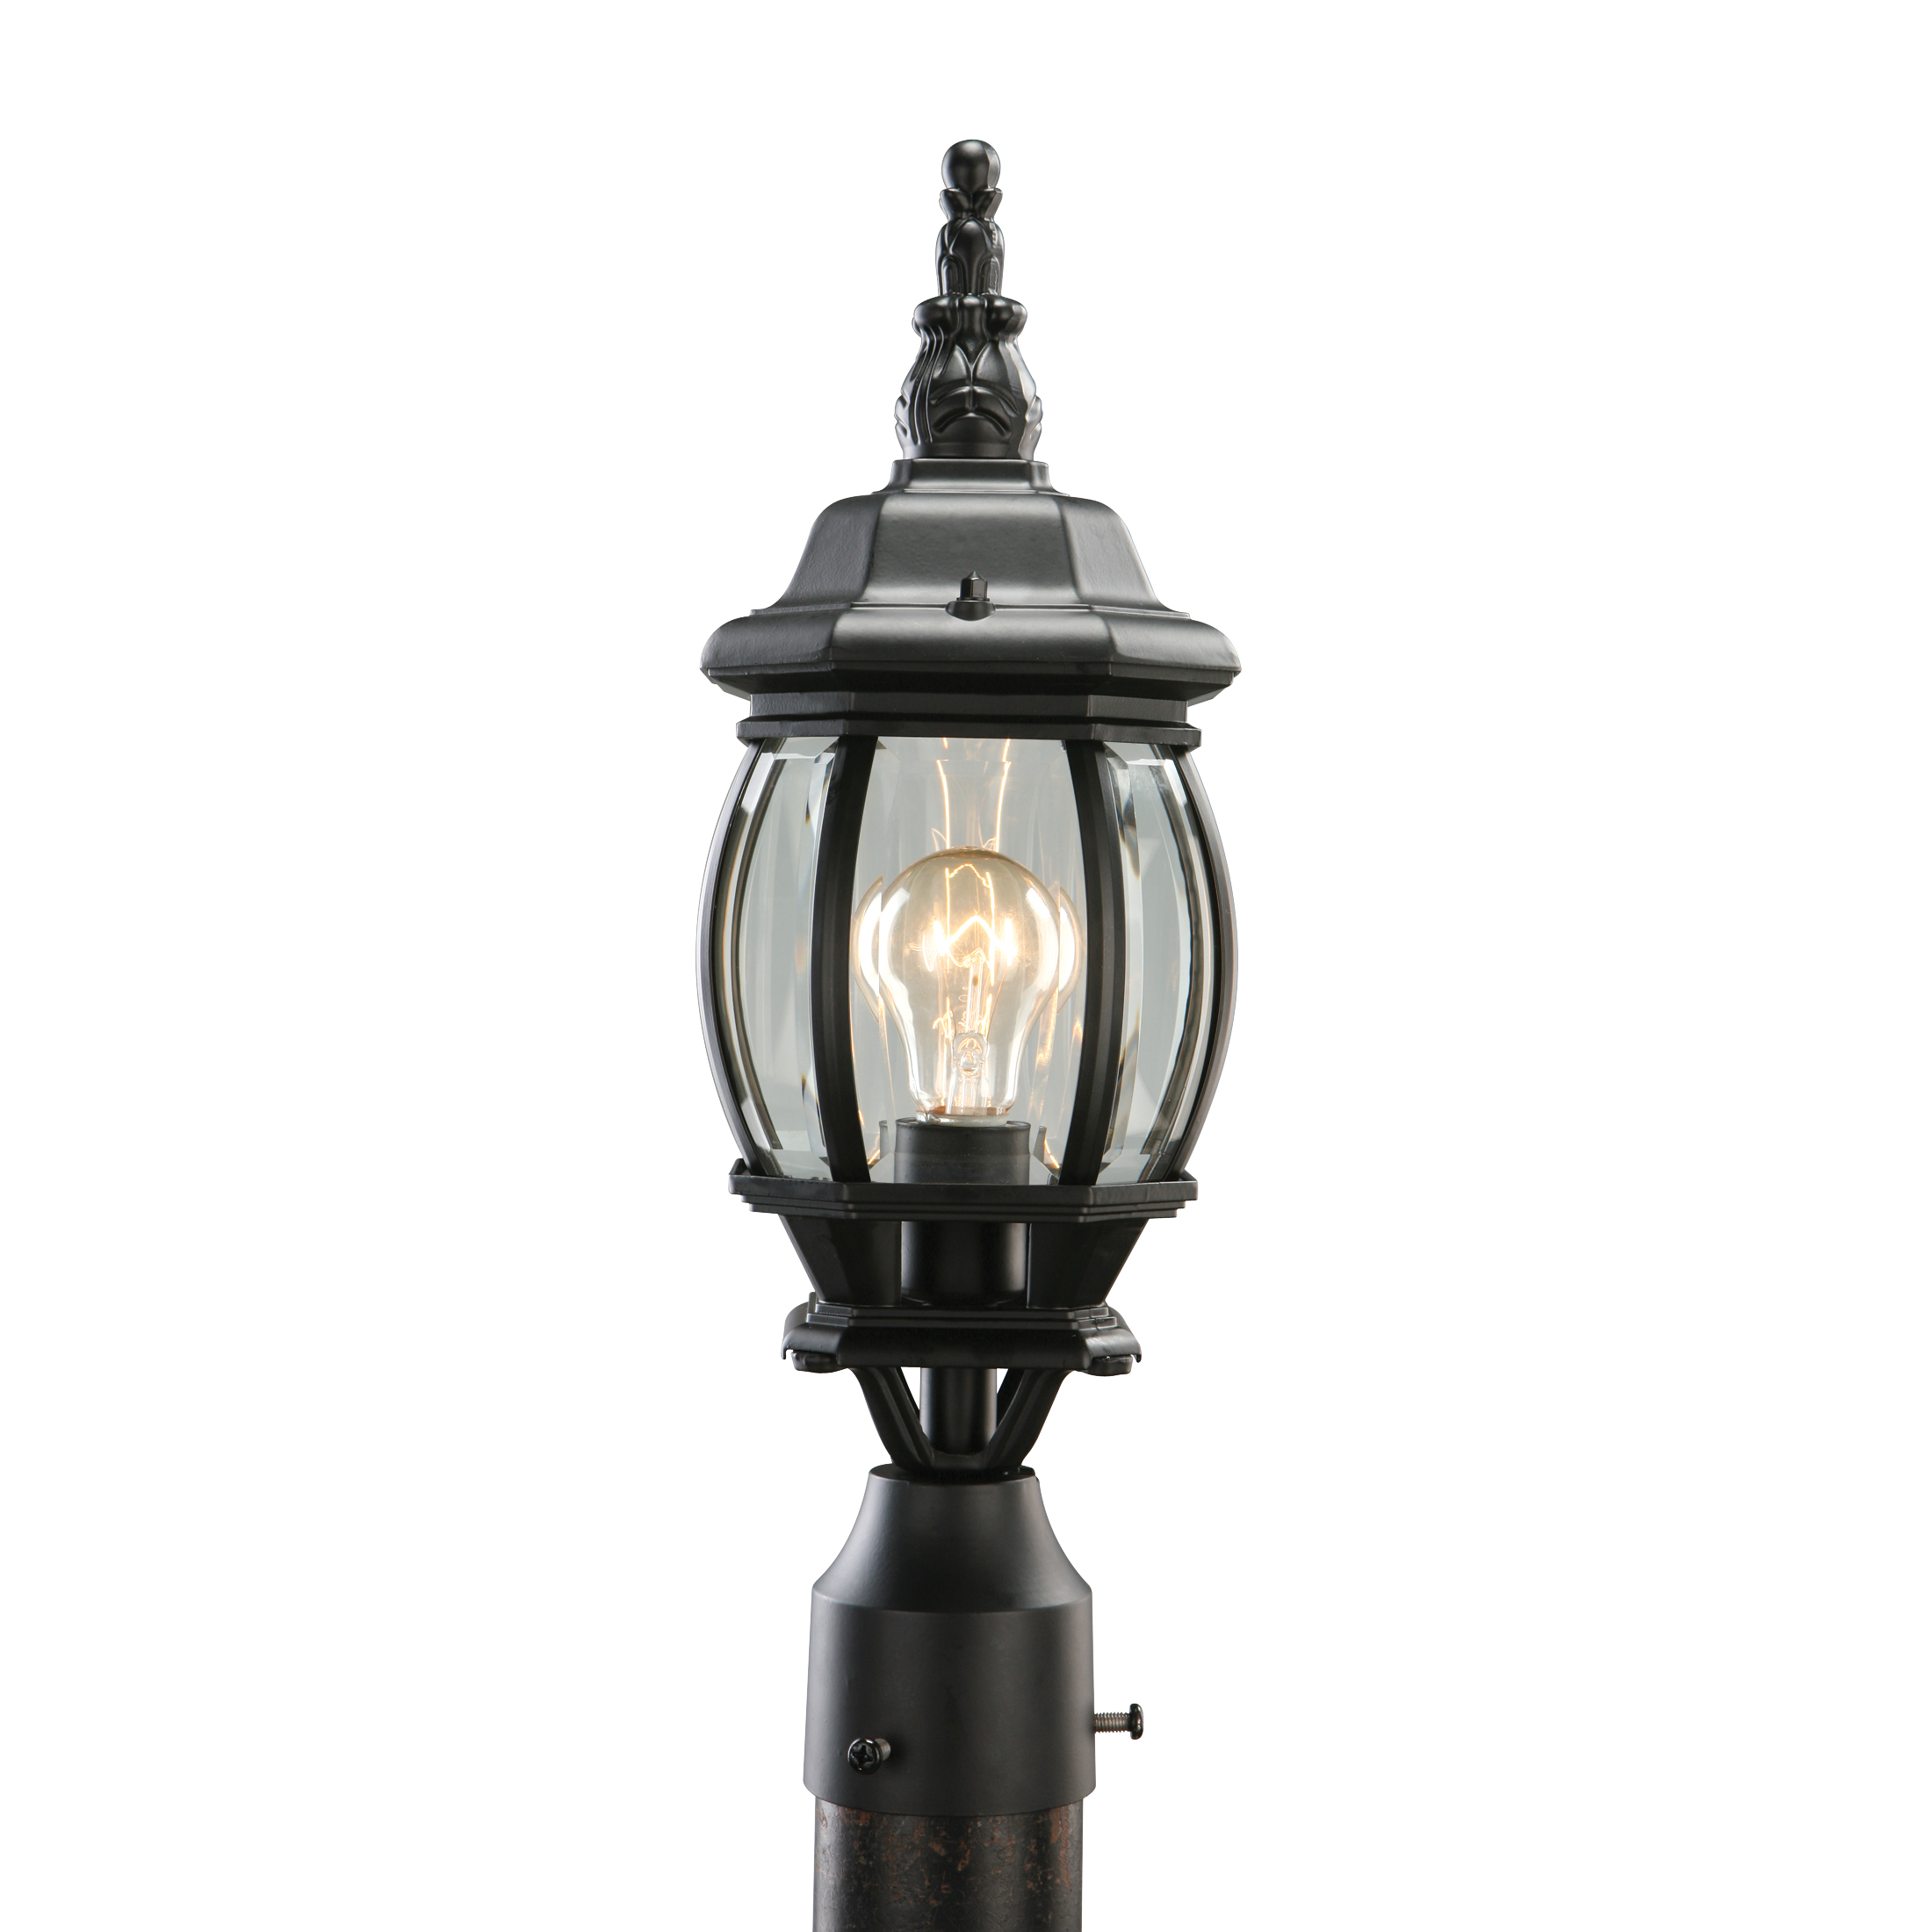 Canterbury Outdoor Post Light, 6.125-Inch by 18.5-Inch, Black Die-Cast Aluminum